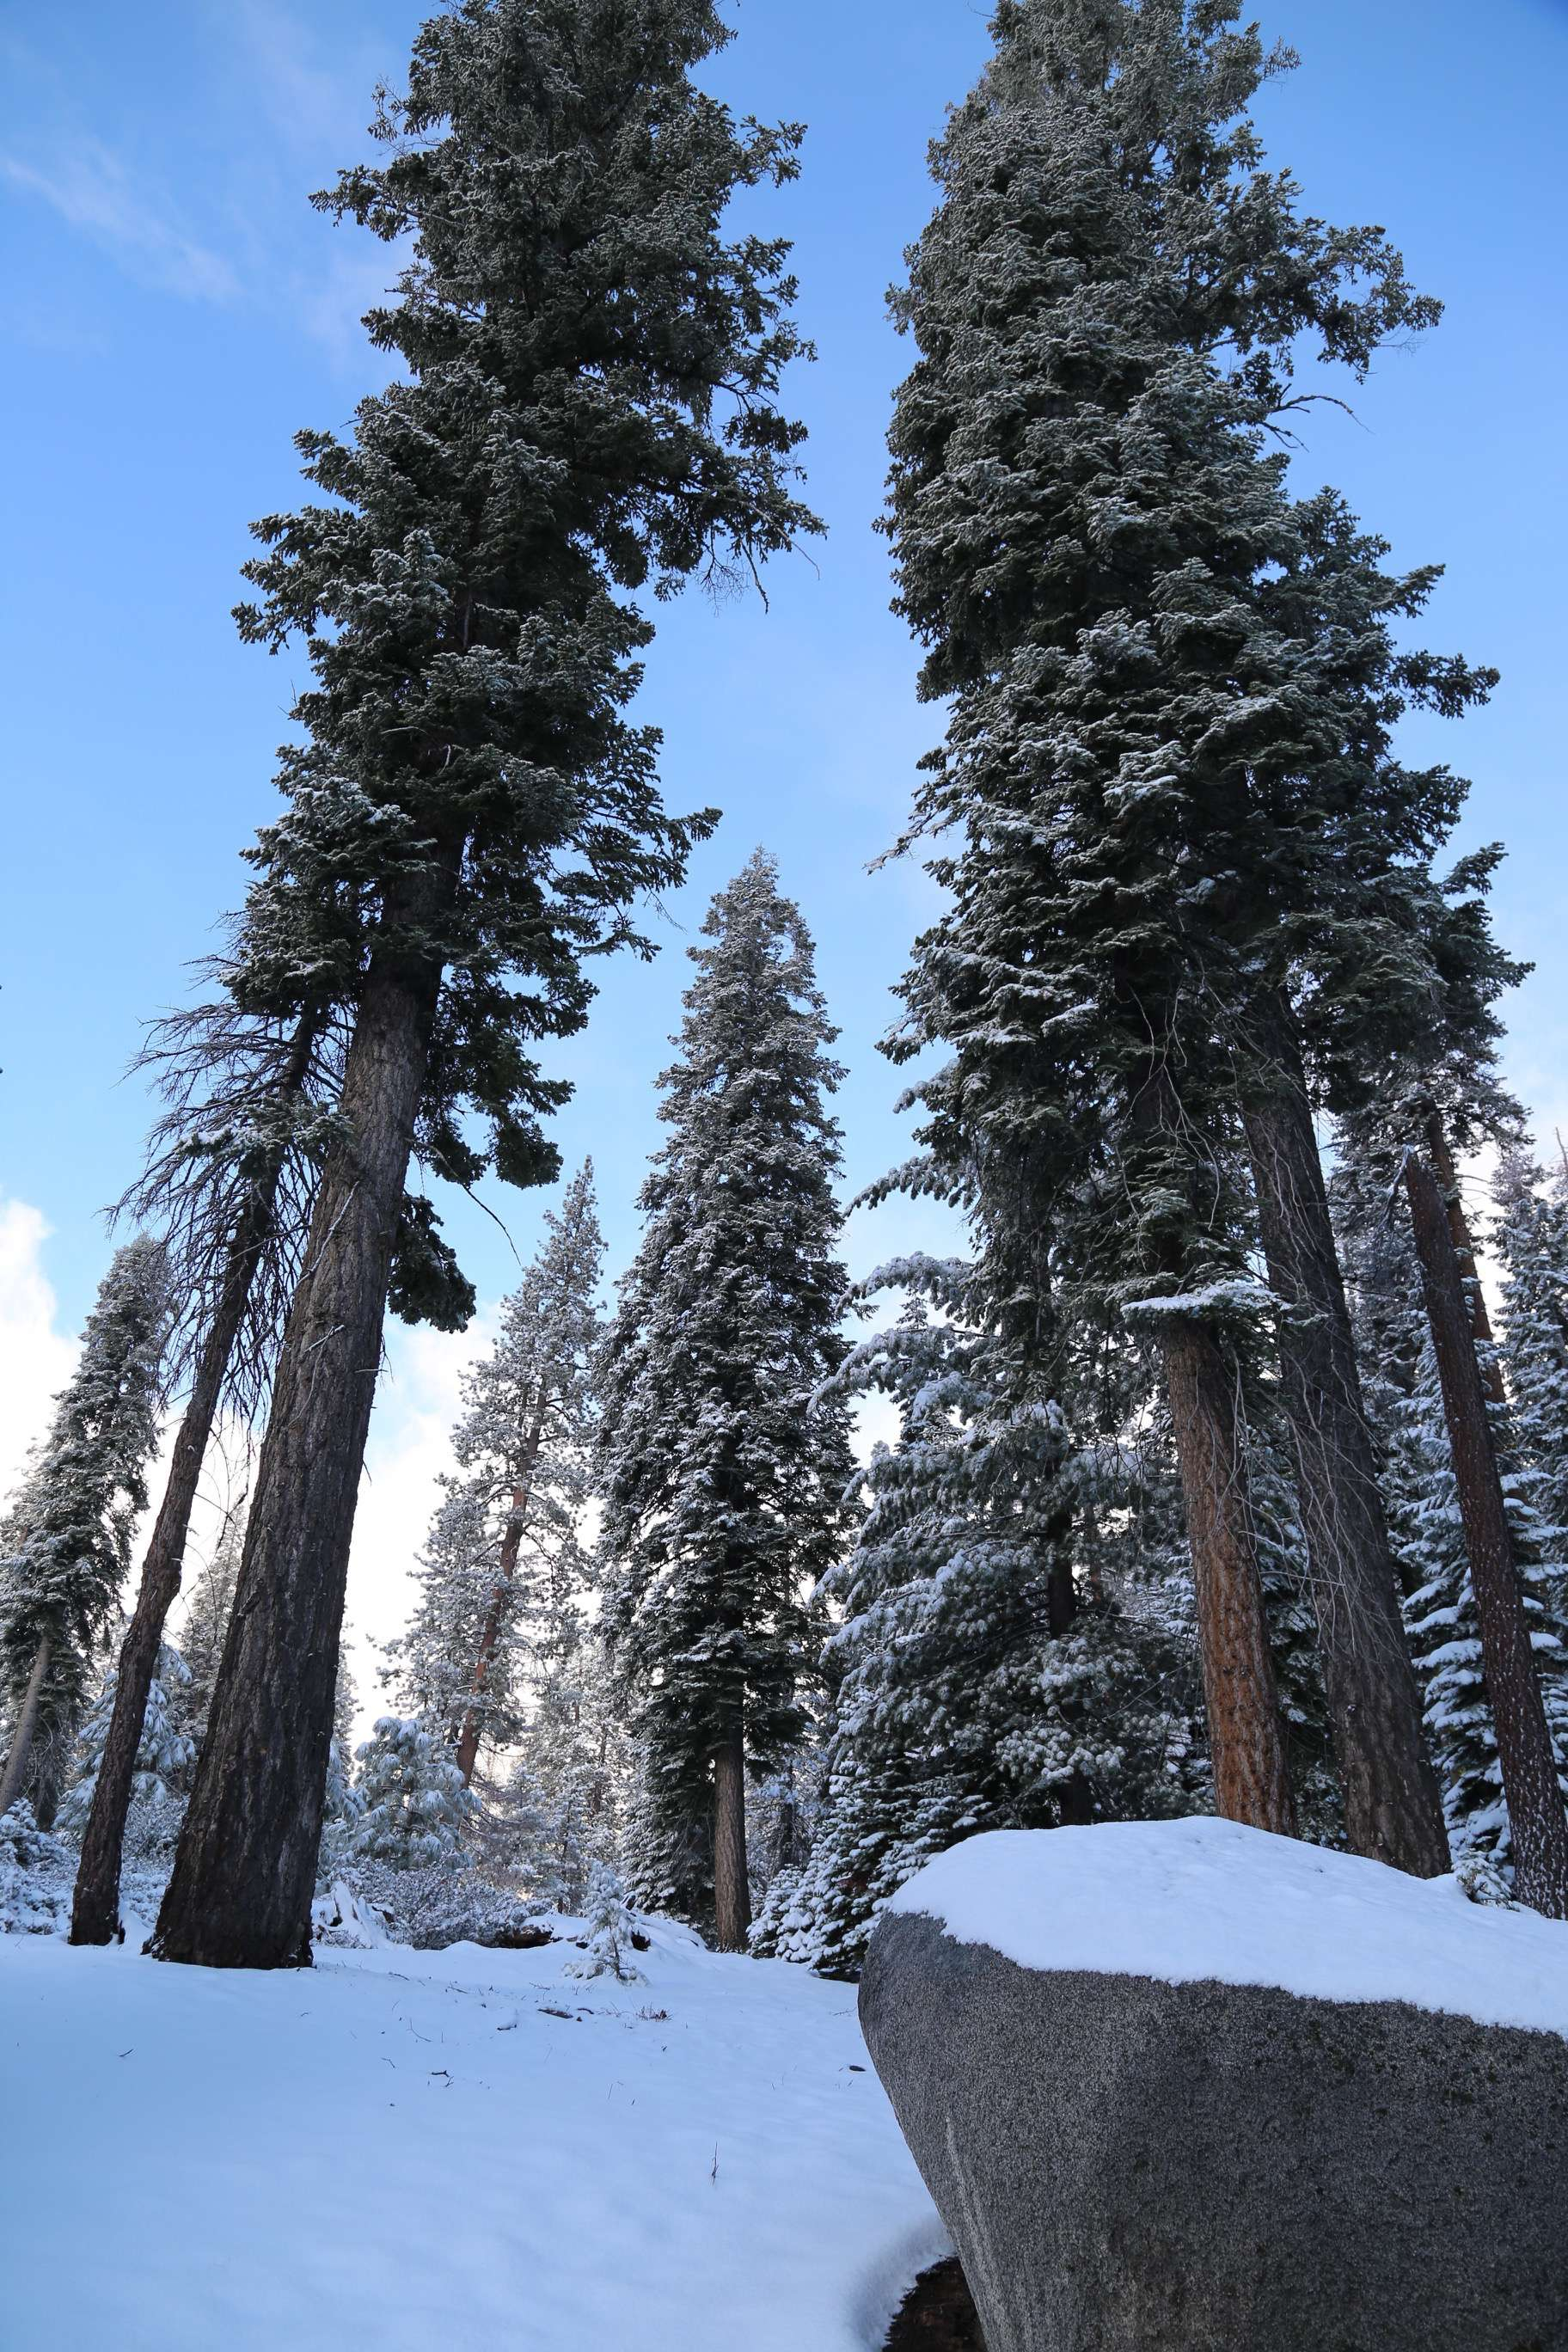 With a home range elevation of 4,600 feet to 6,600 feet above sea level, much of the moisture available to the giant sequoias comes from snow melt.